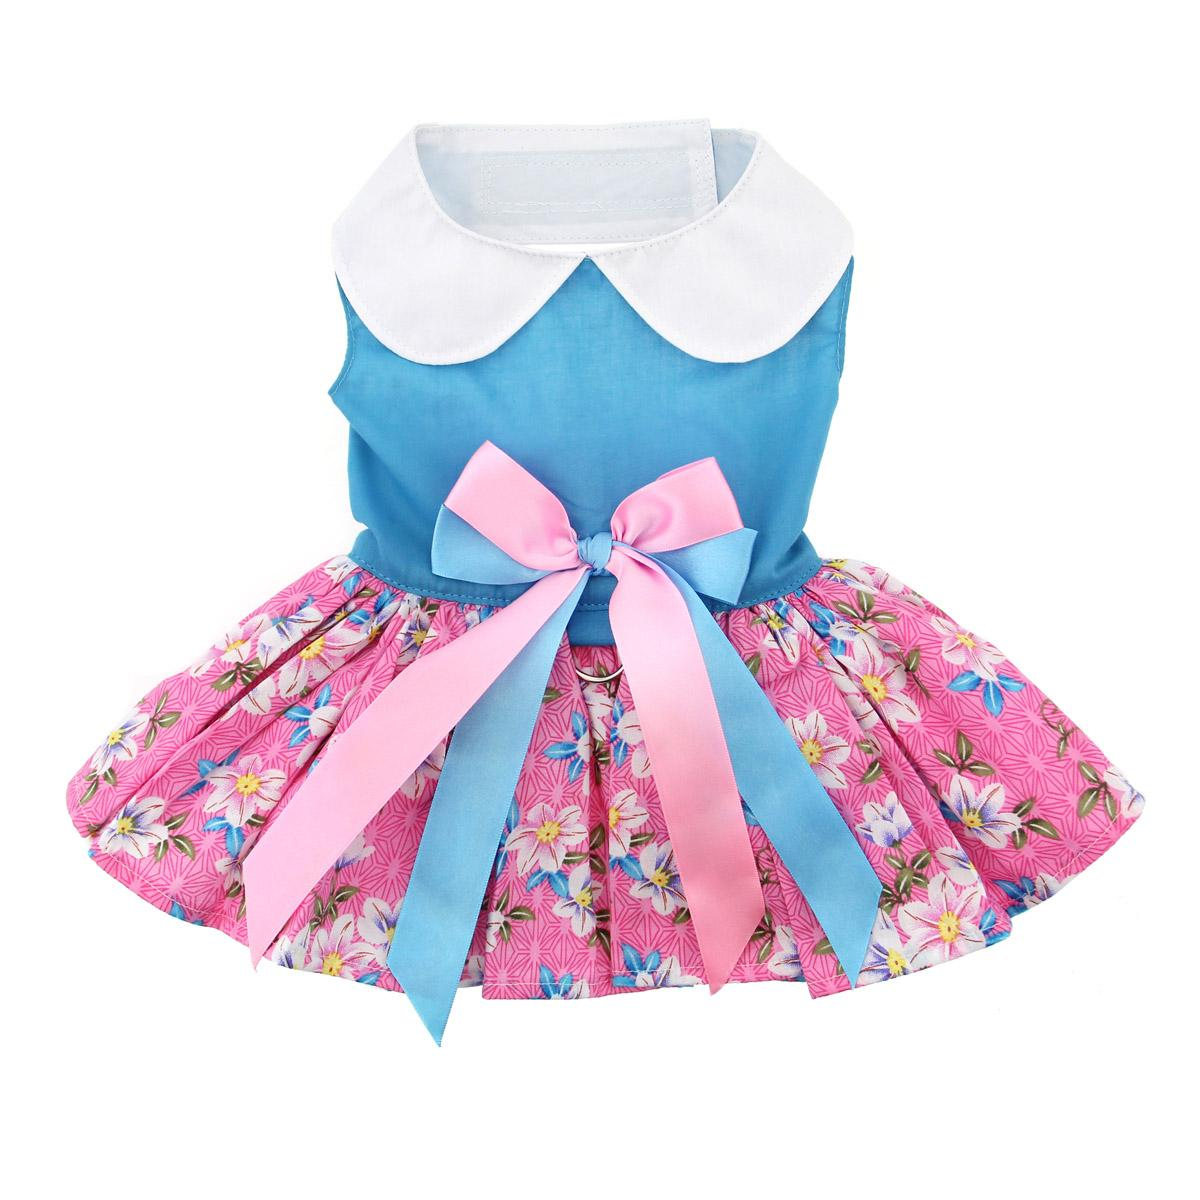 Doggie Design Dog Dress with Matching Leash, Pink & Blue Plumeria Floral , X-Small